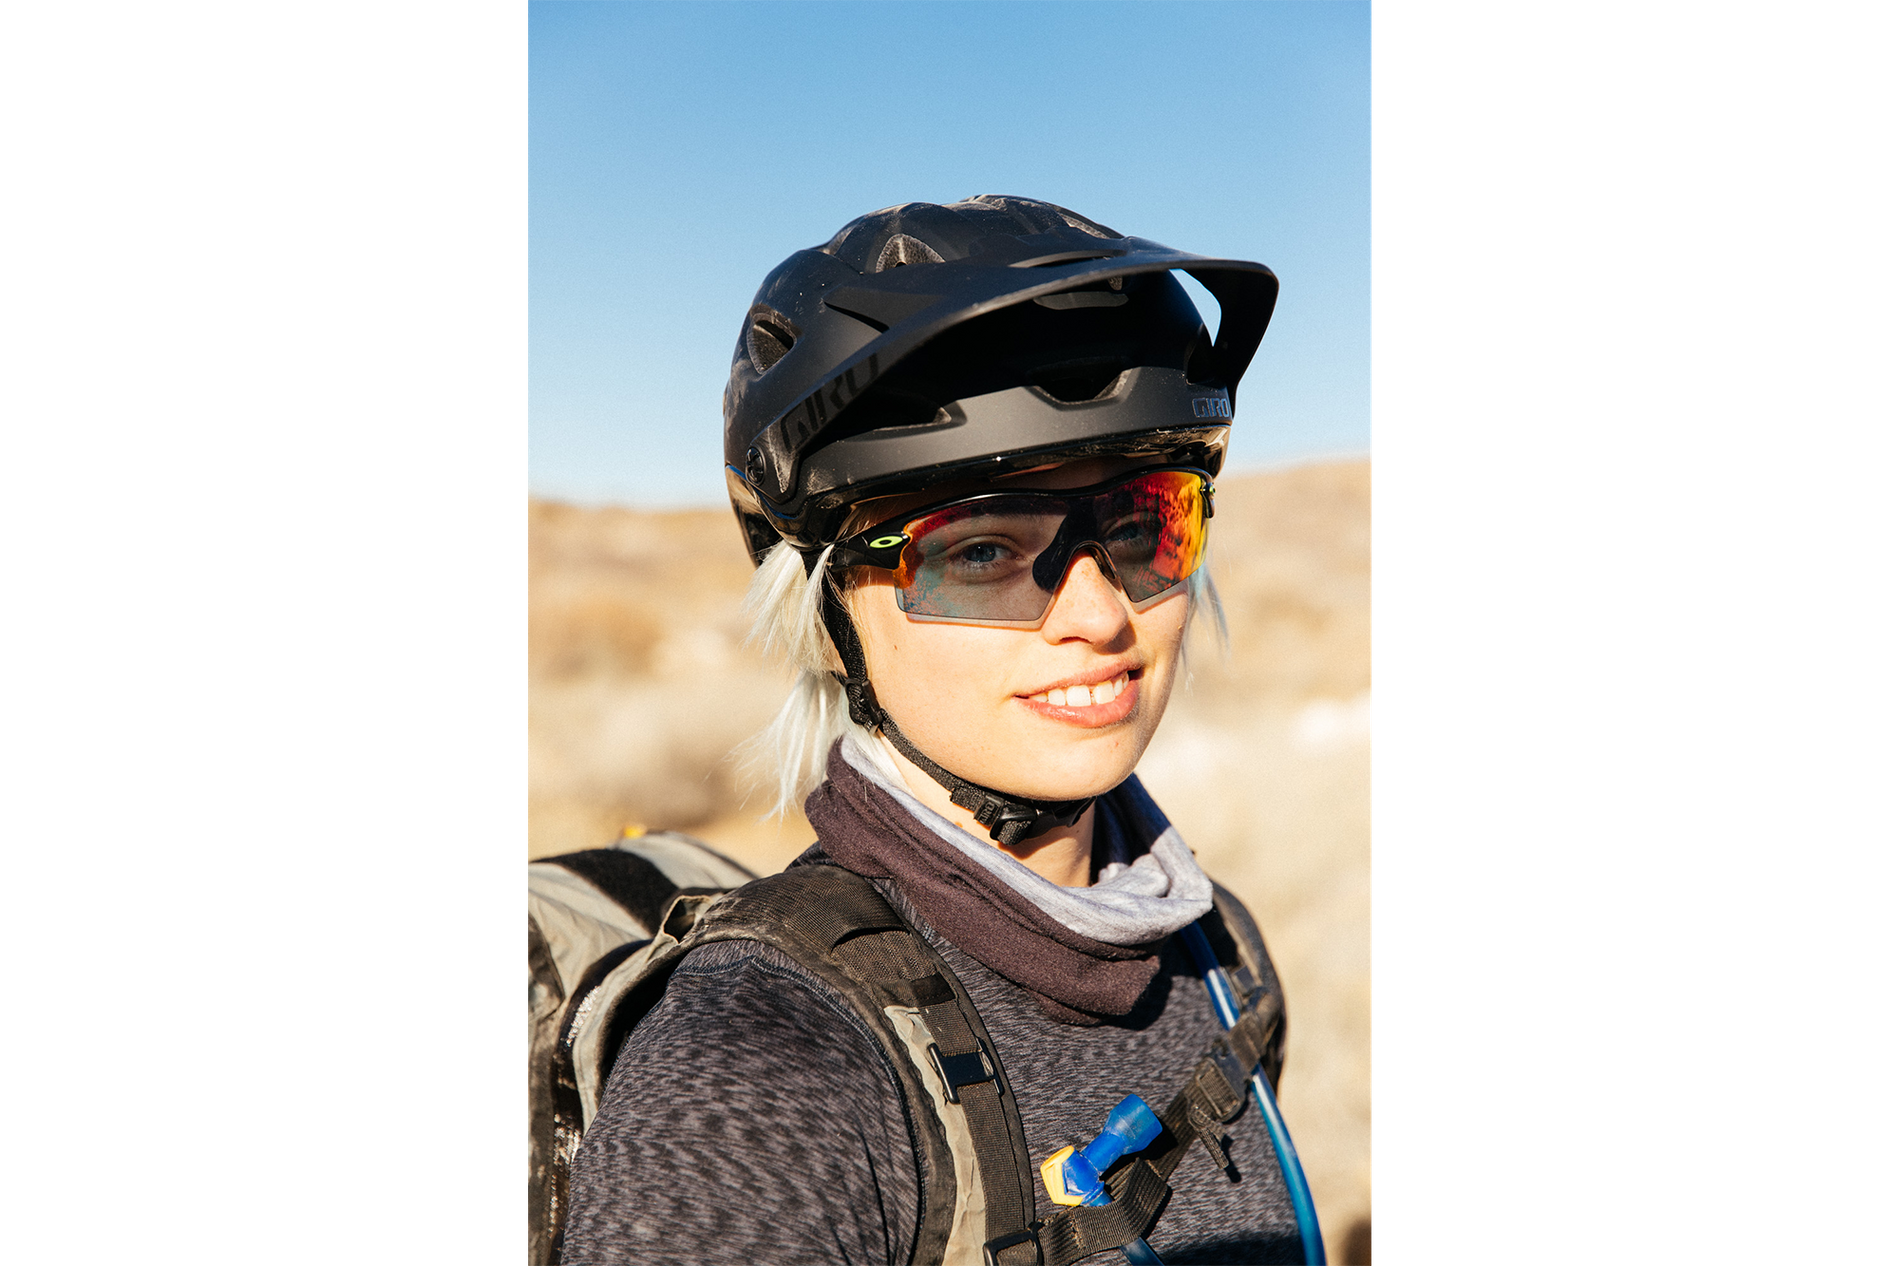 Kat - Santa Ana, CA - cancer survivor, product manager for GT Bicycles.